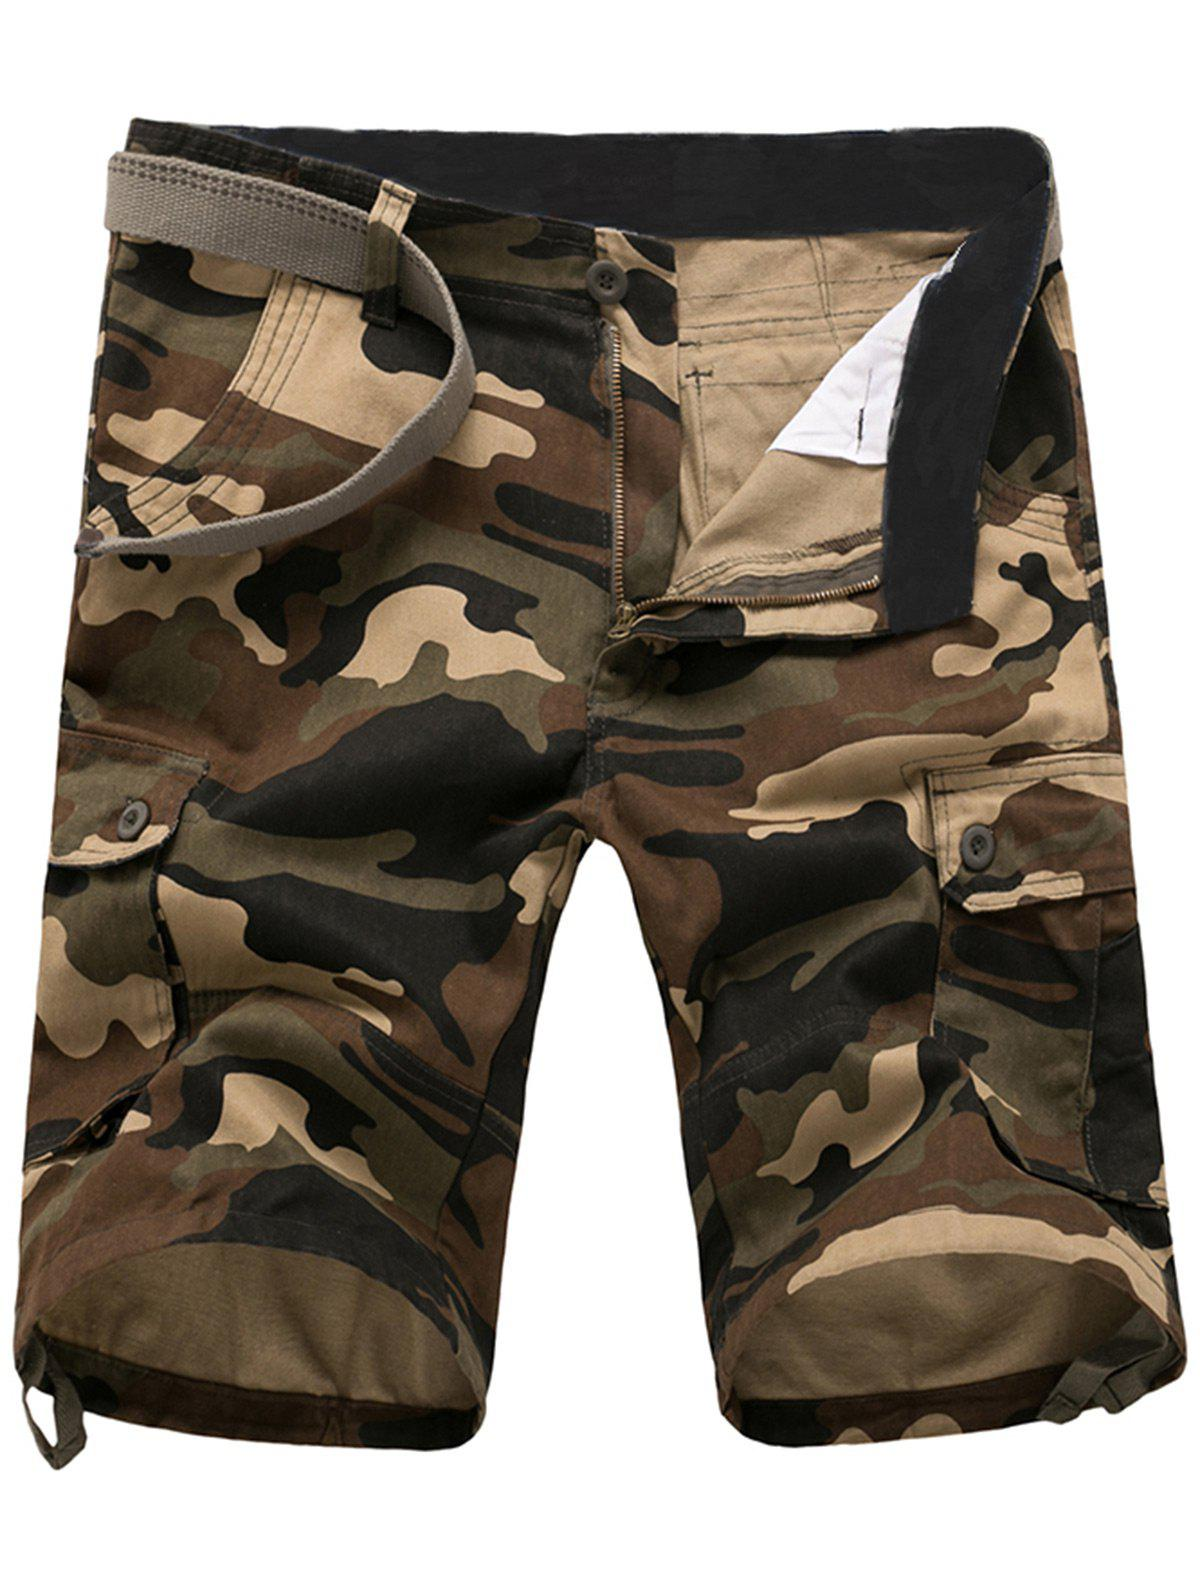 Zipper Fly Poches Camouflage Cargo Shorts - Kaki 38